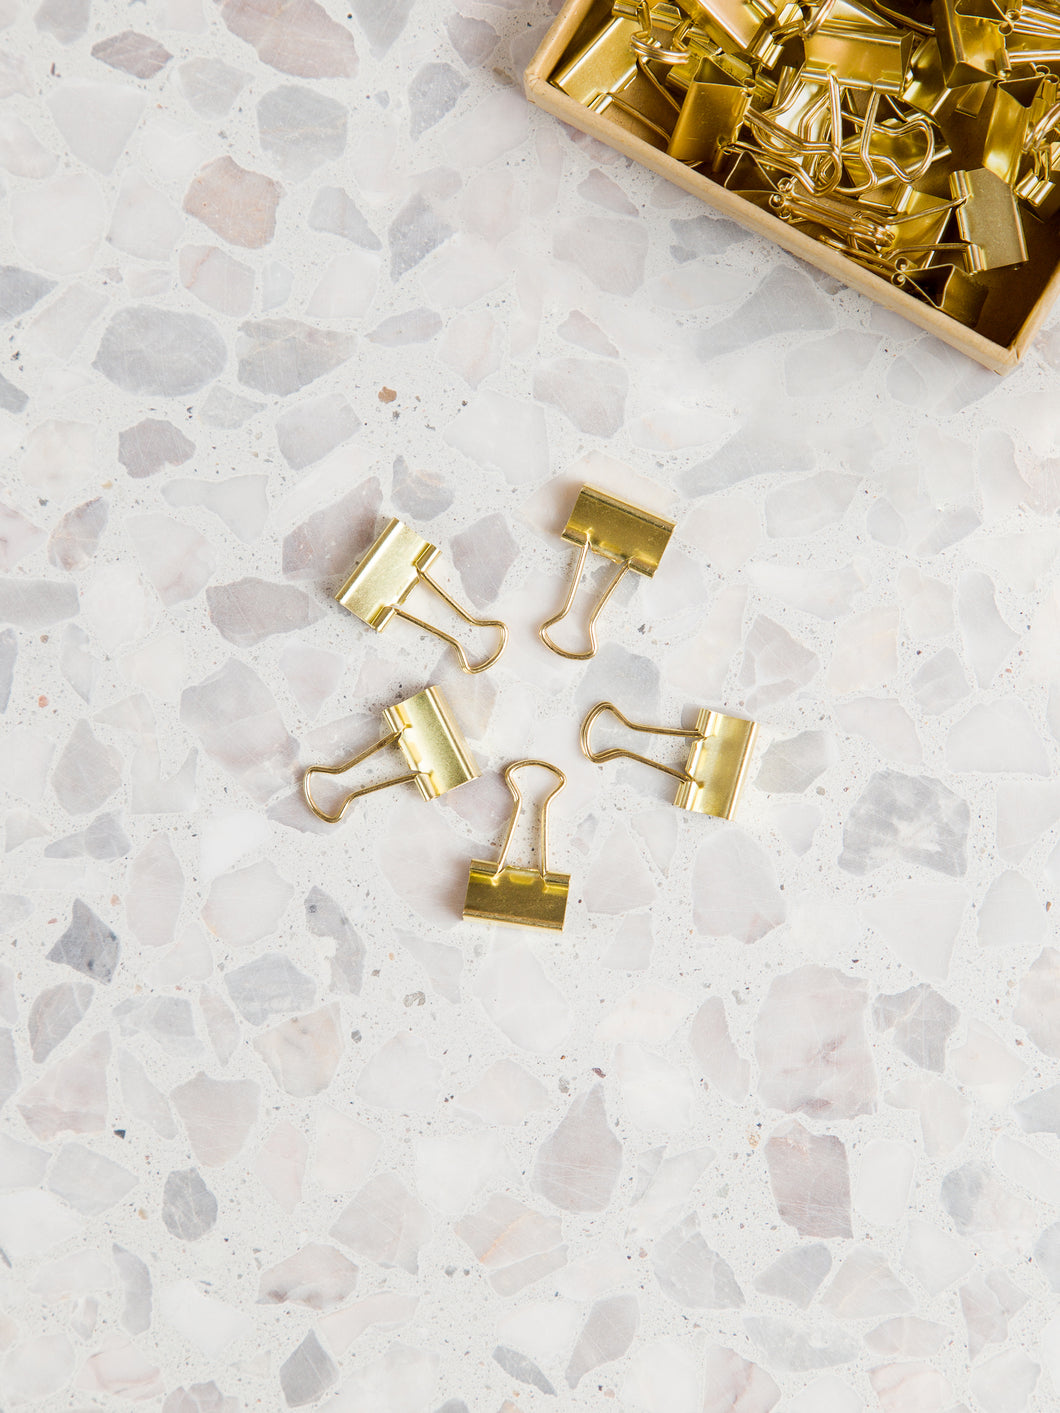 Gold Mini Binder Clips, Set of 40